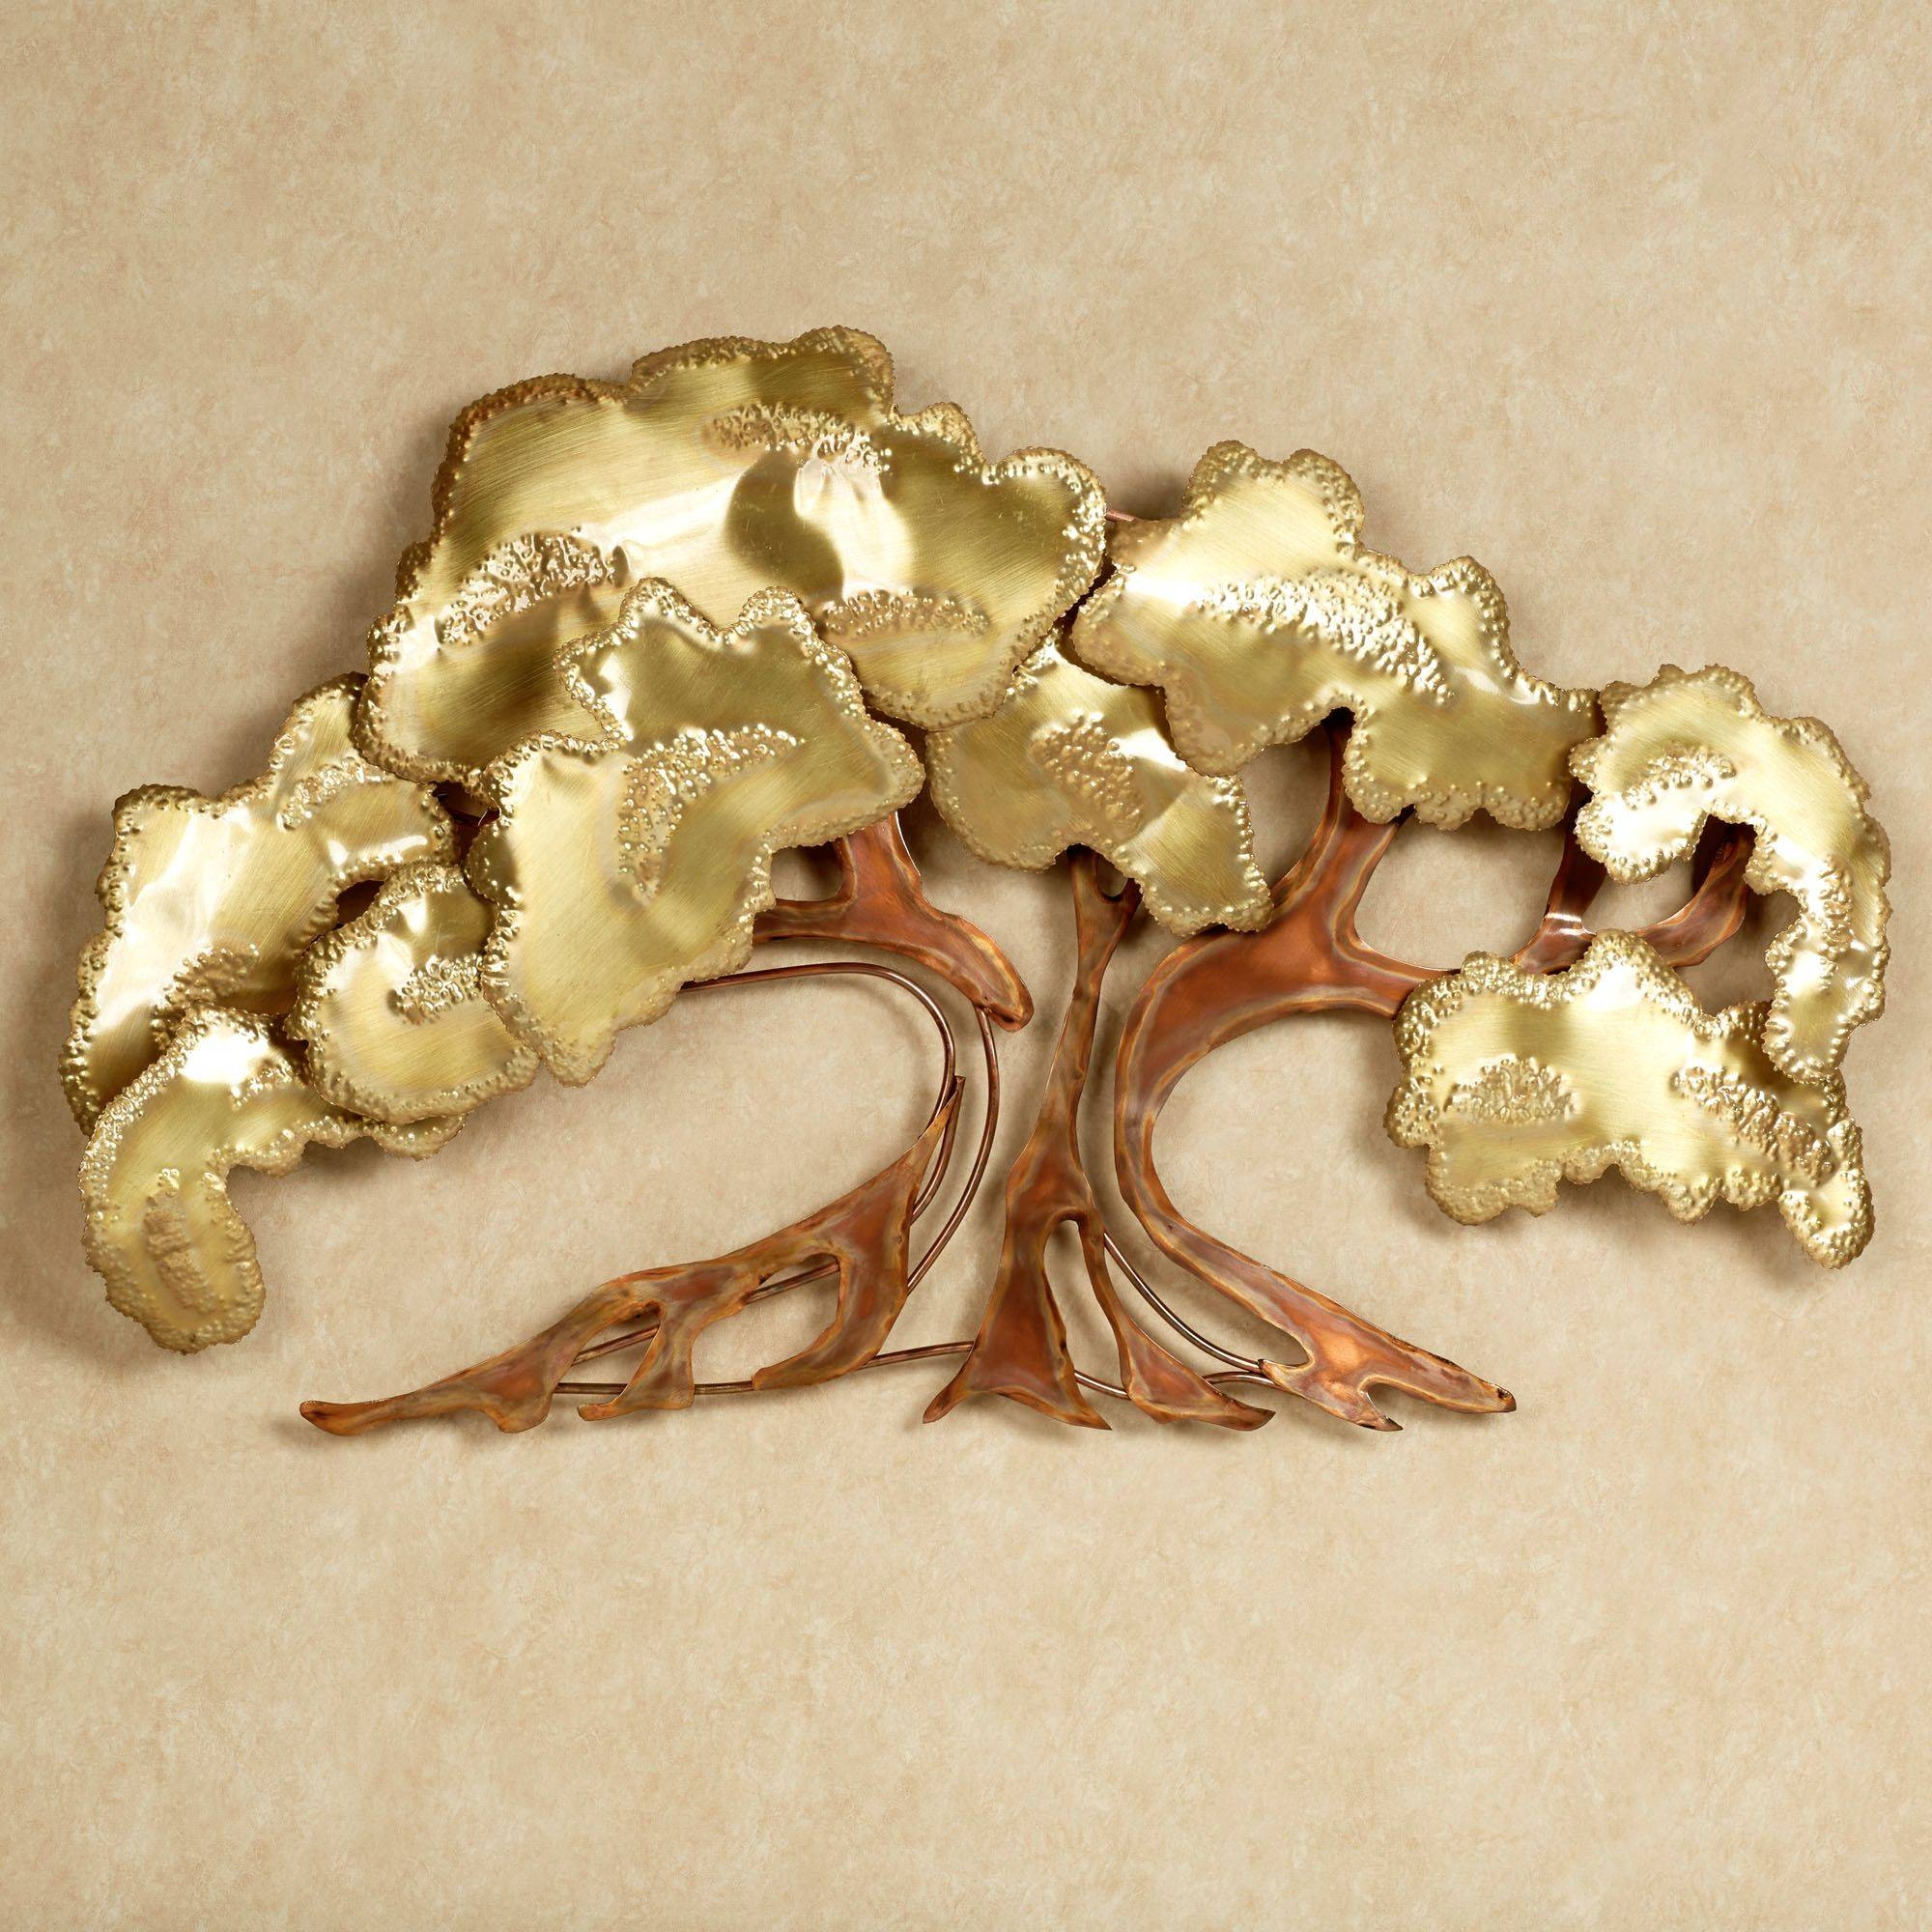 Unique Tree Of Life Metal Wall Art Decor Sculpture Desaign With With 2018 Unique Metal Wall Art Decors (View 11 of 20)